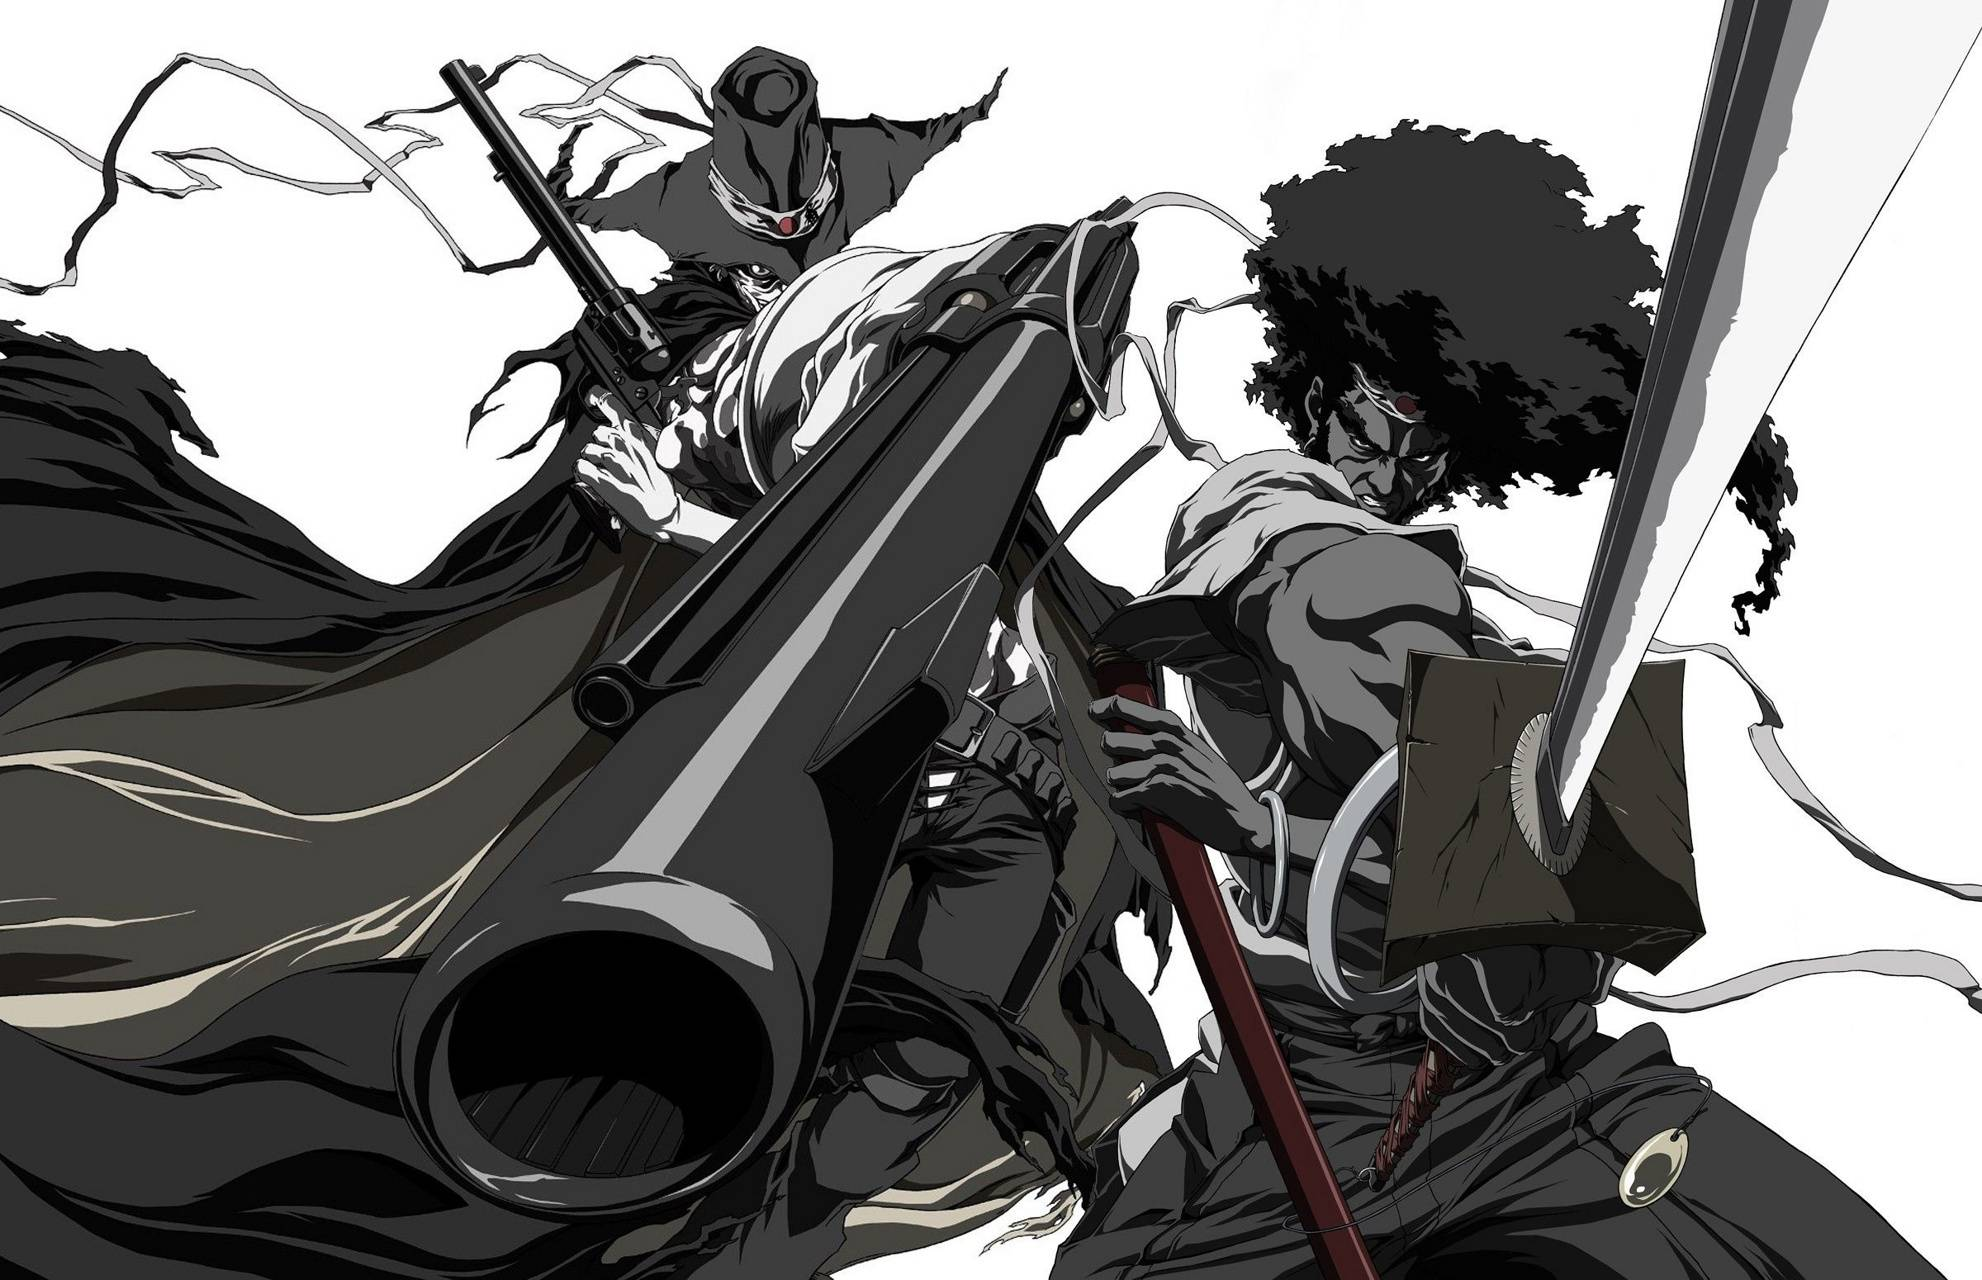 Afro samurai 2 band